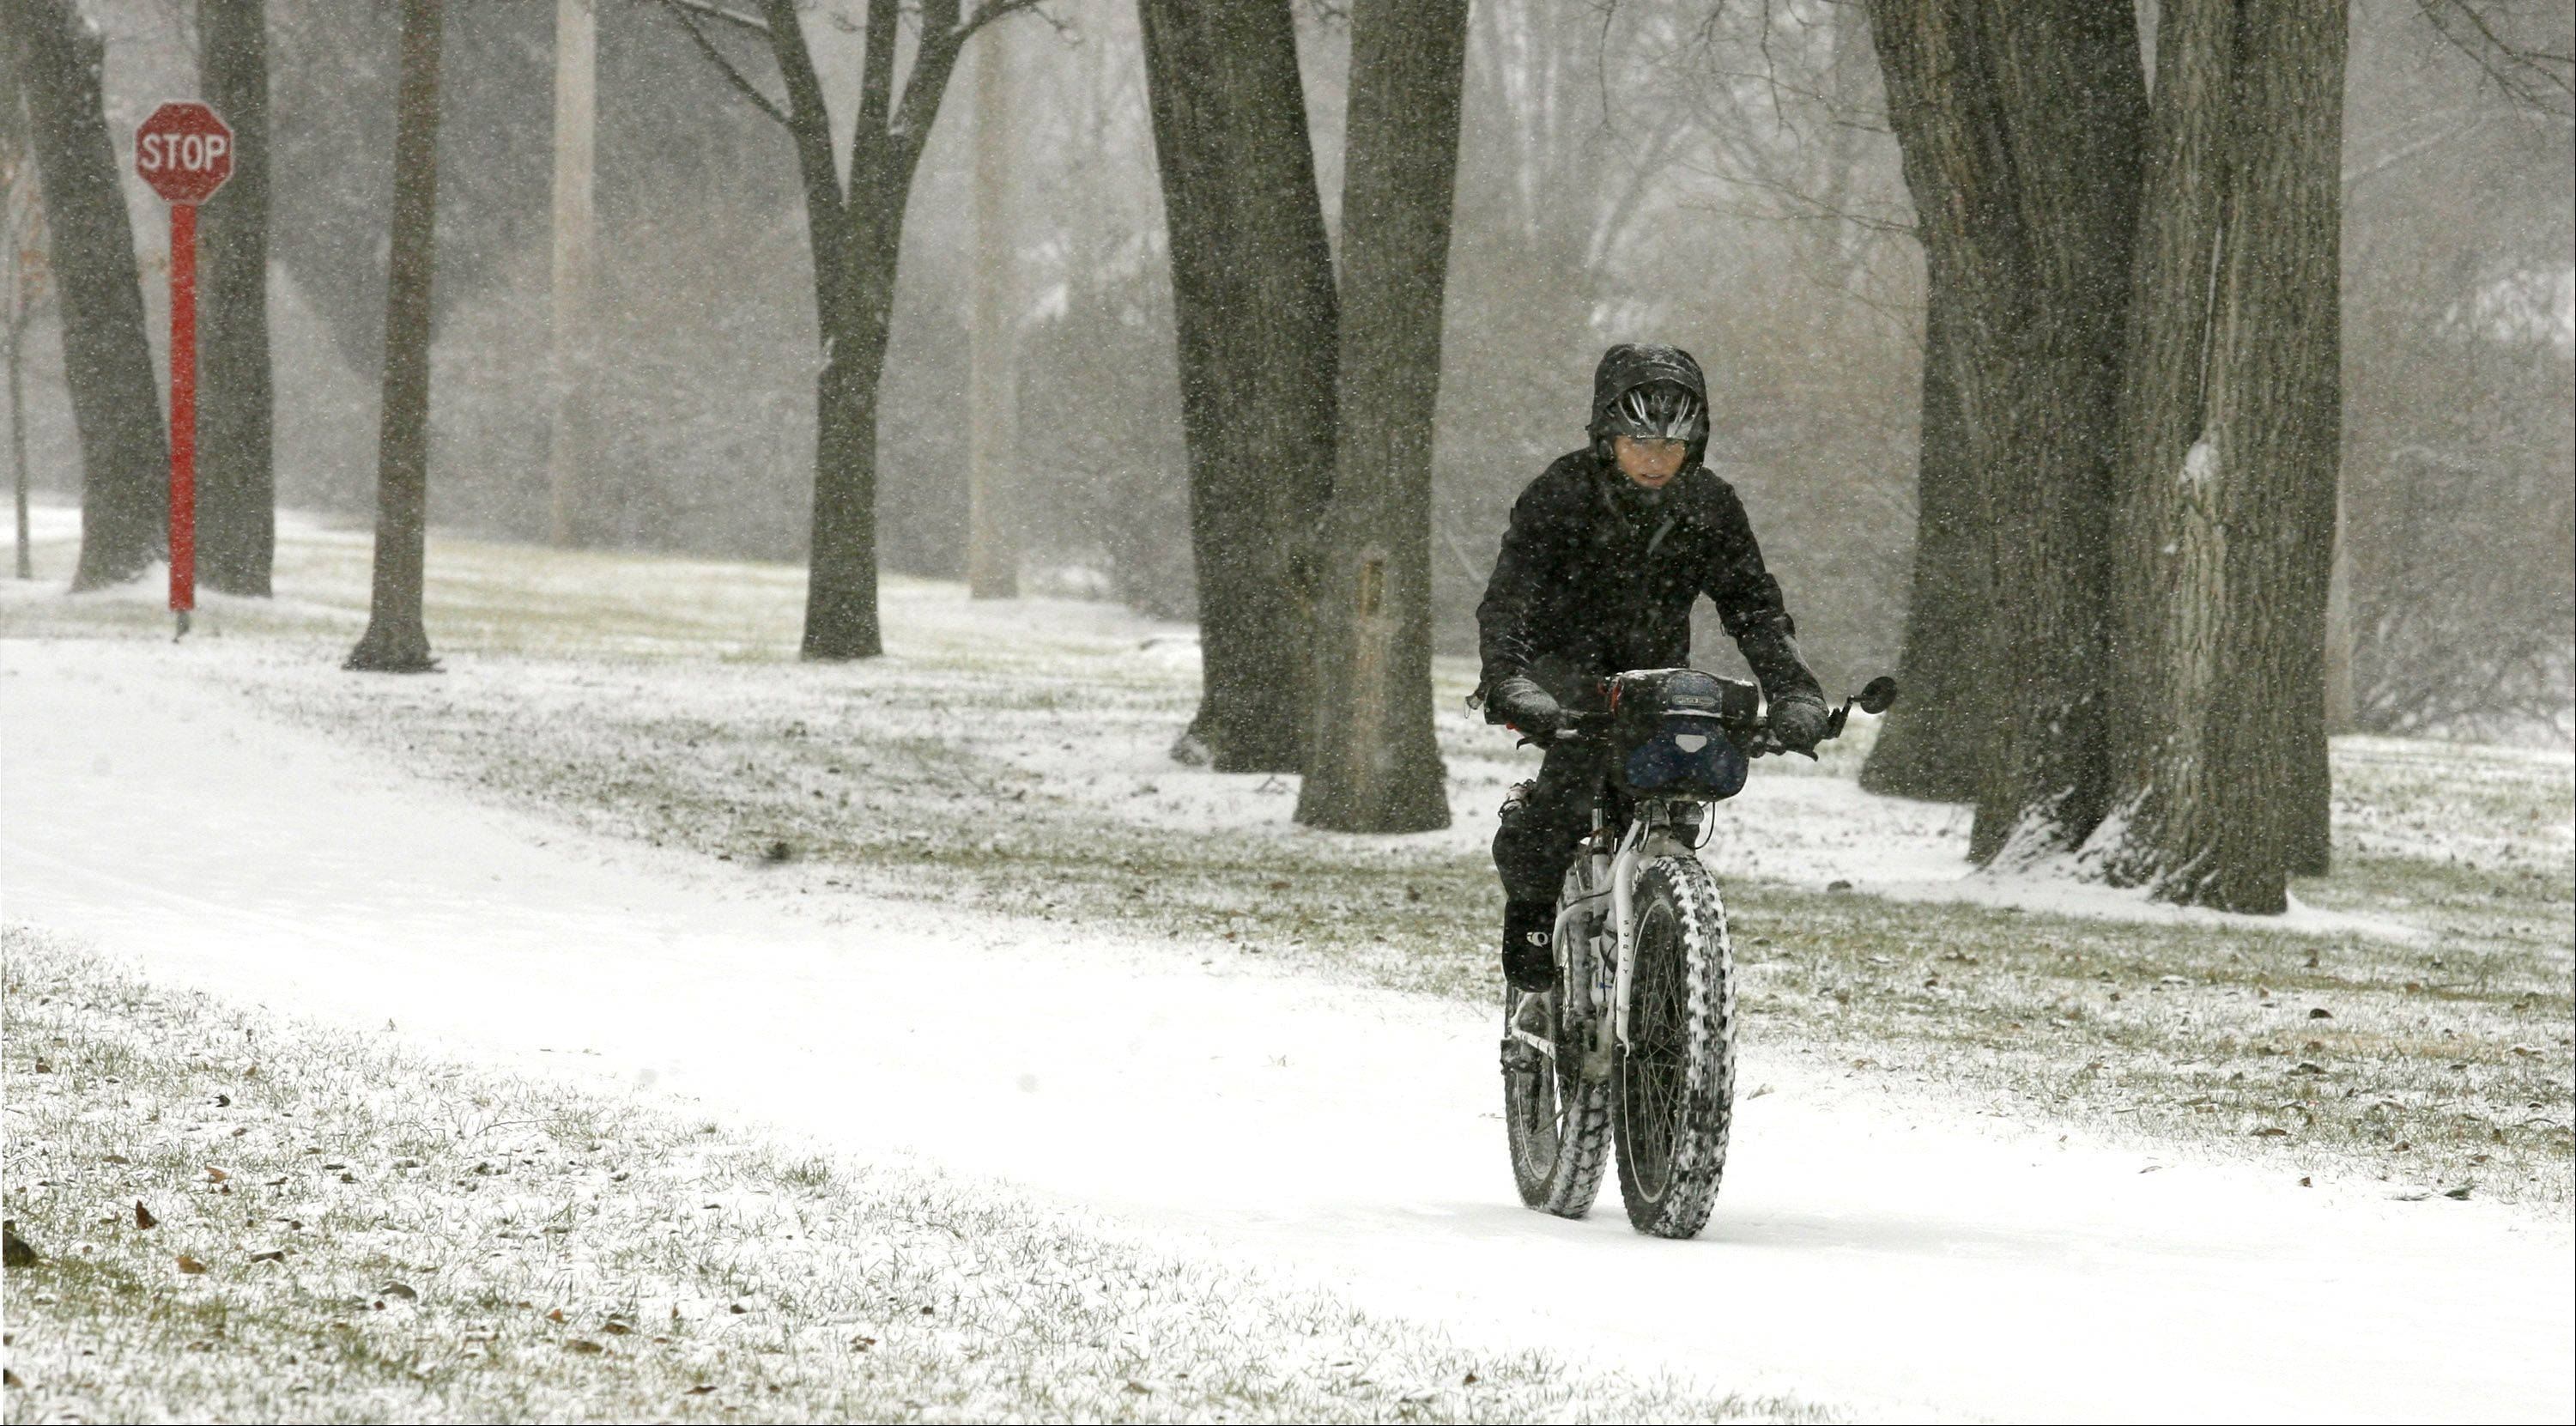 A lone bicycle rider makes her way east through a light dusting of snow along the Illinois Prairie Path in Villa Park. I used a long lens to compresses the subject, framed between banks of trees. A blood-red stop sign accents the monochromatic feel.